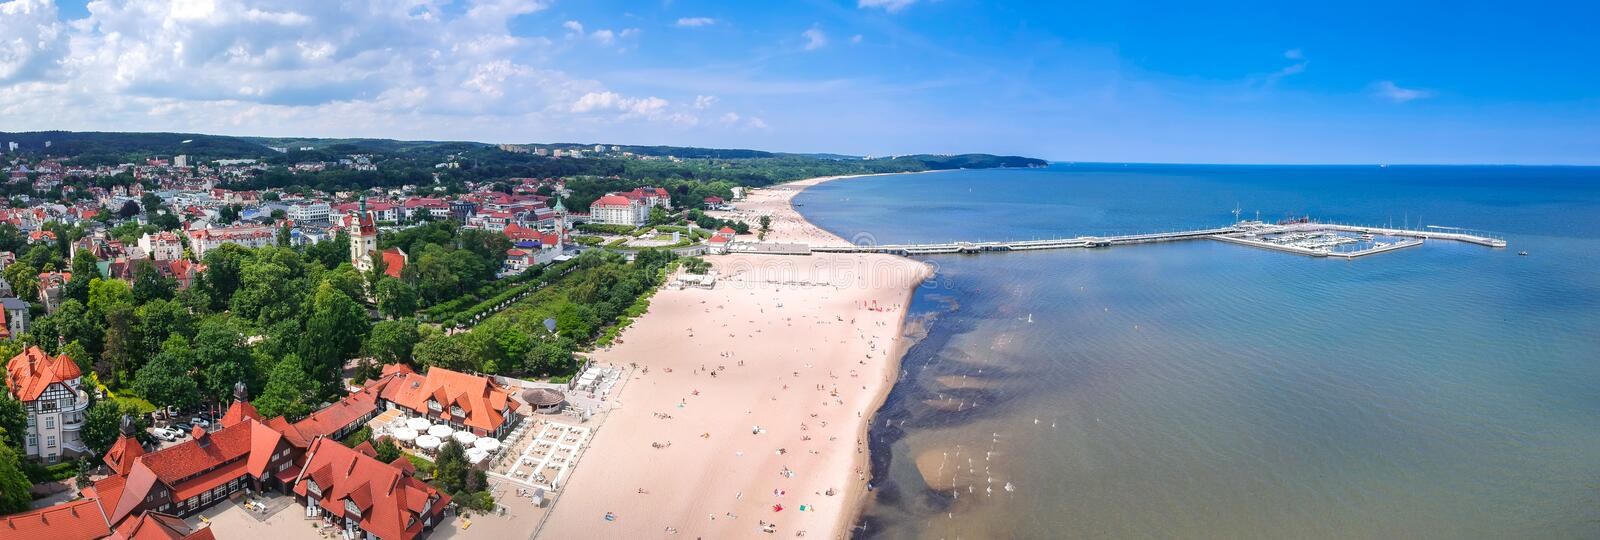 Panorama of the Baltic sea coastline with wooden pier in Sopot, Poland. Aerial, view, beach, vacation, molo, tourist, water, travel, promenade, europe stock photo